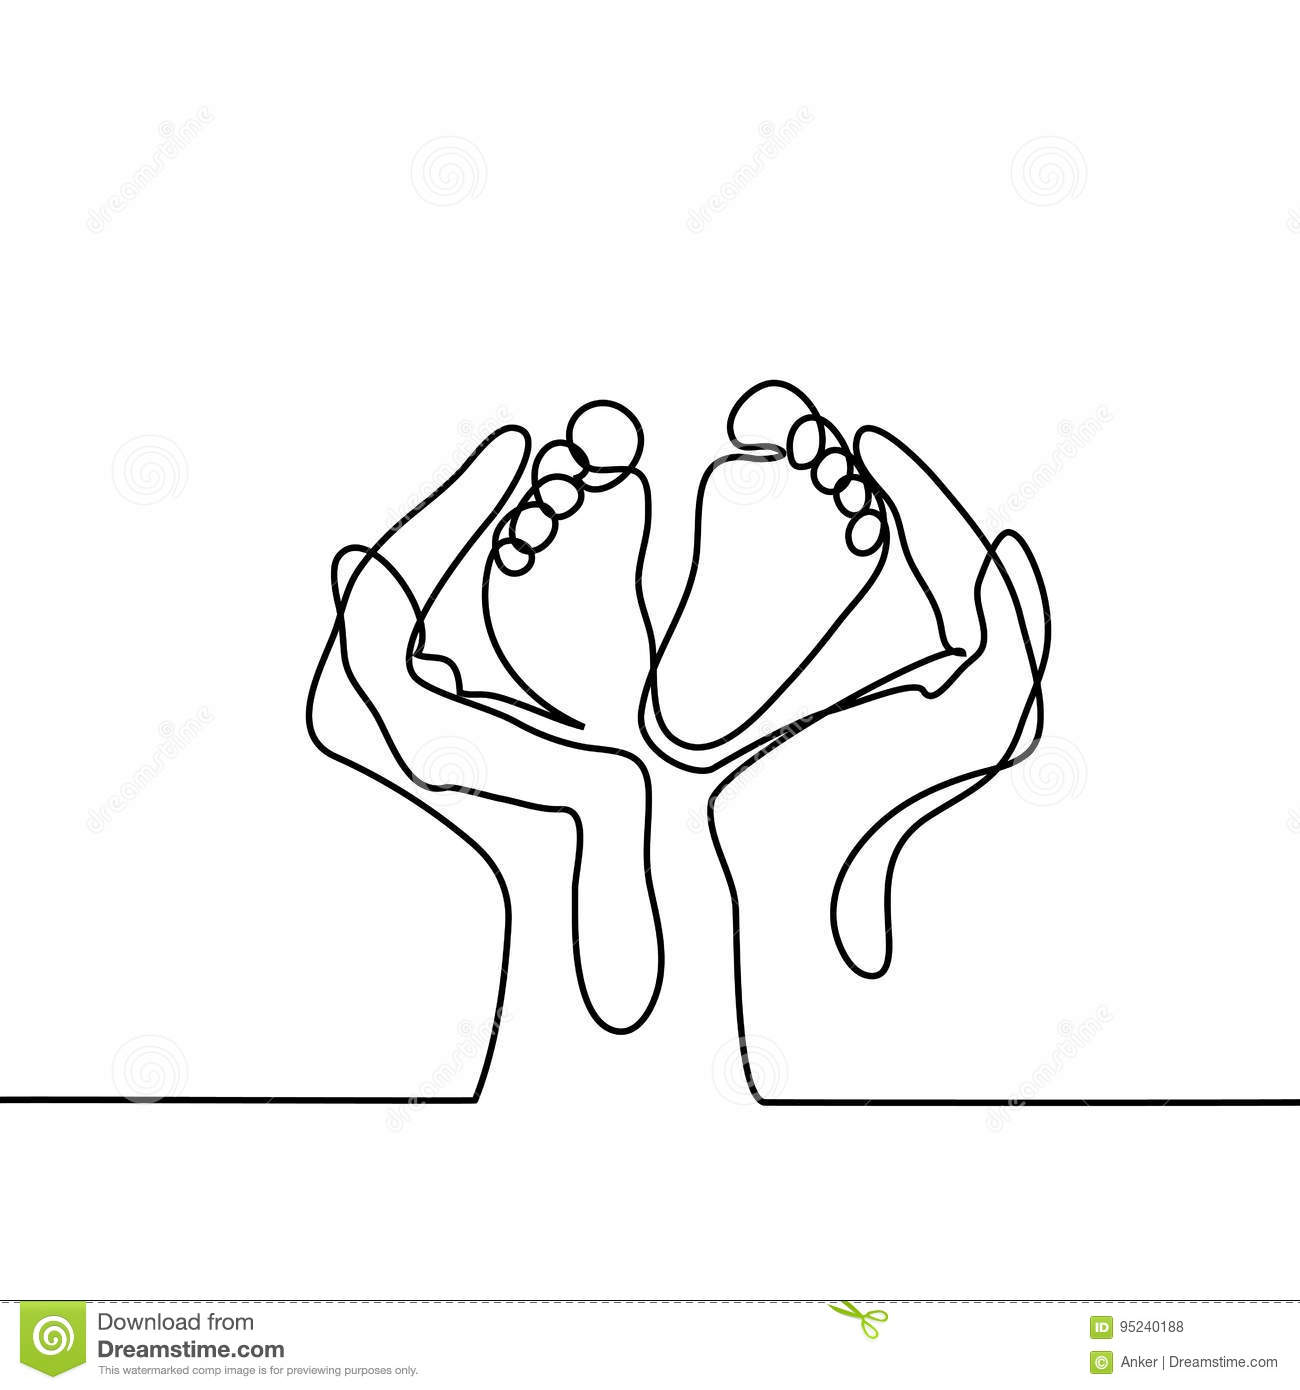 Line Drawing Baby : Hands holding baby foot protection symbol stock vector